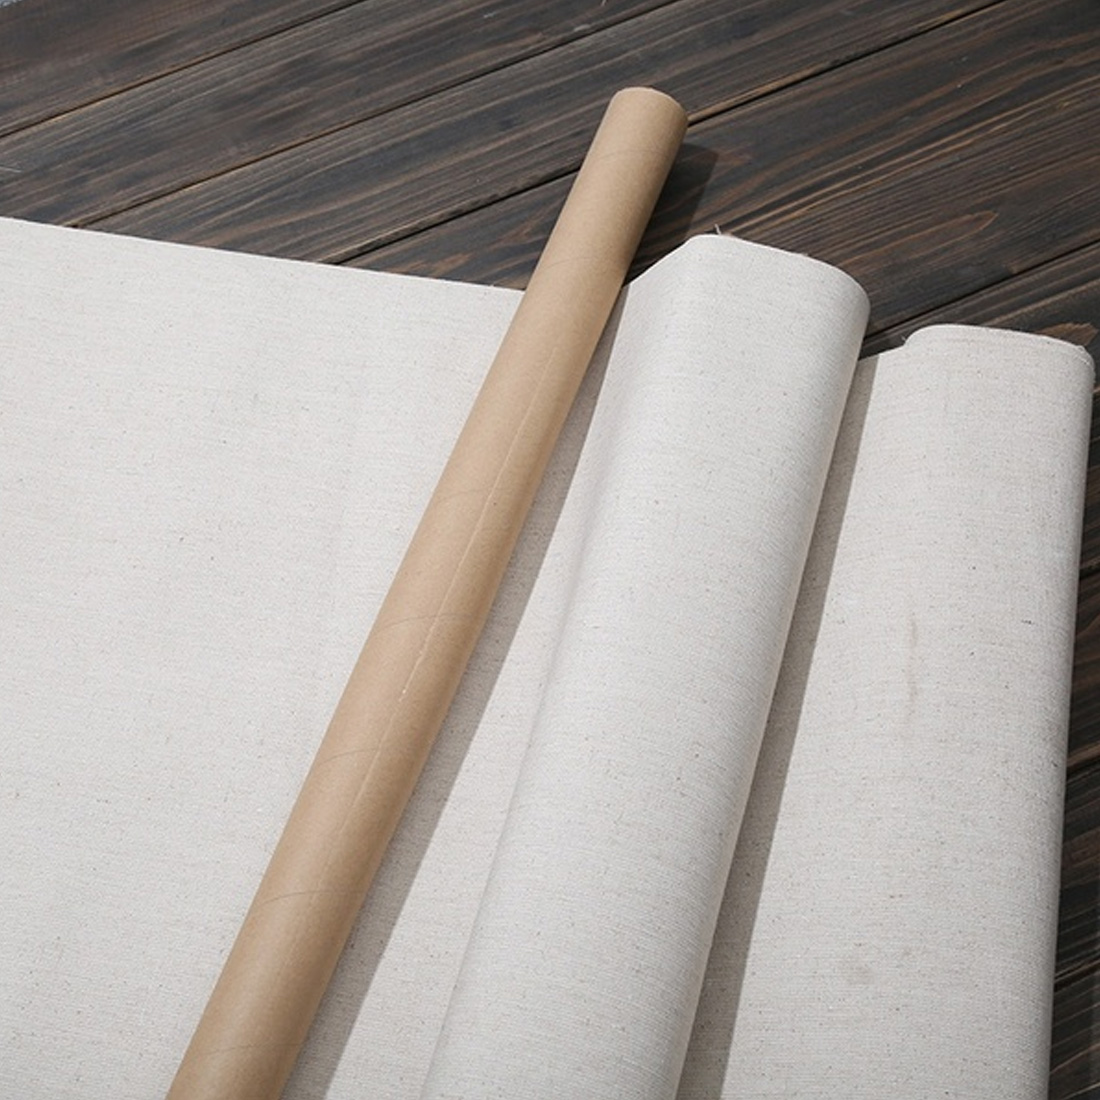 1M Linen Blend Primed Blank Canvas Layer Oil Painting Canvas acrylic painting 1m One Roll ,28/38/48/58 Width image